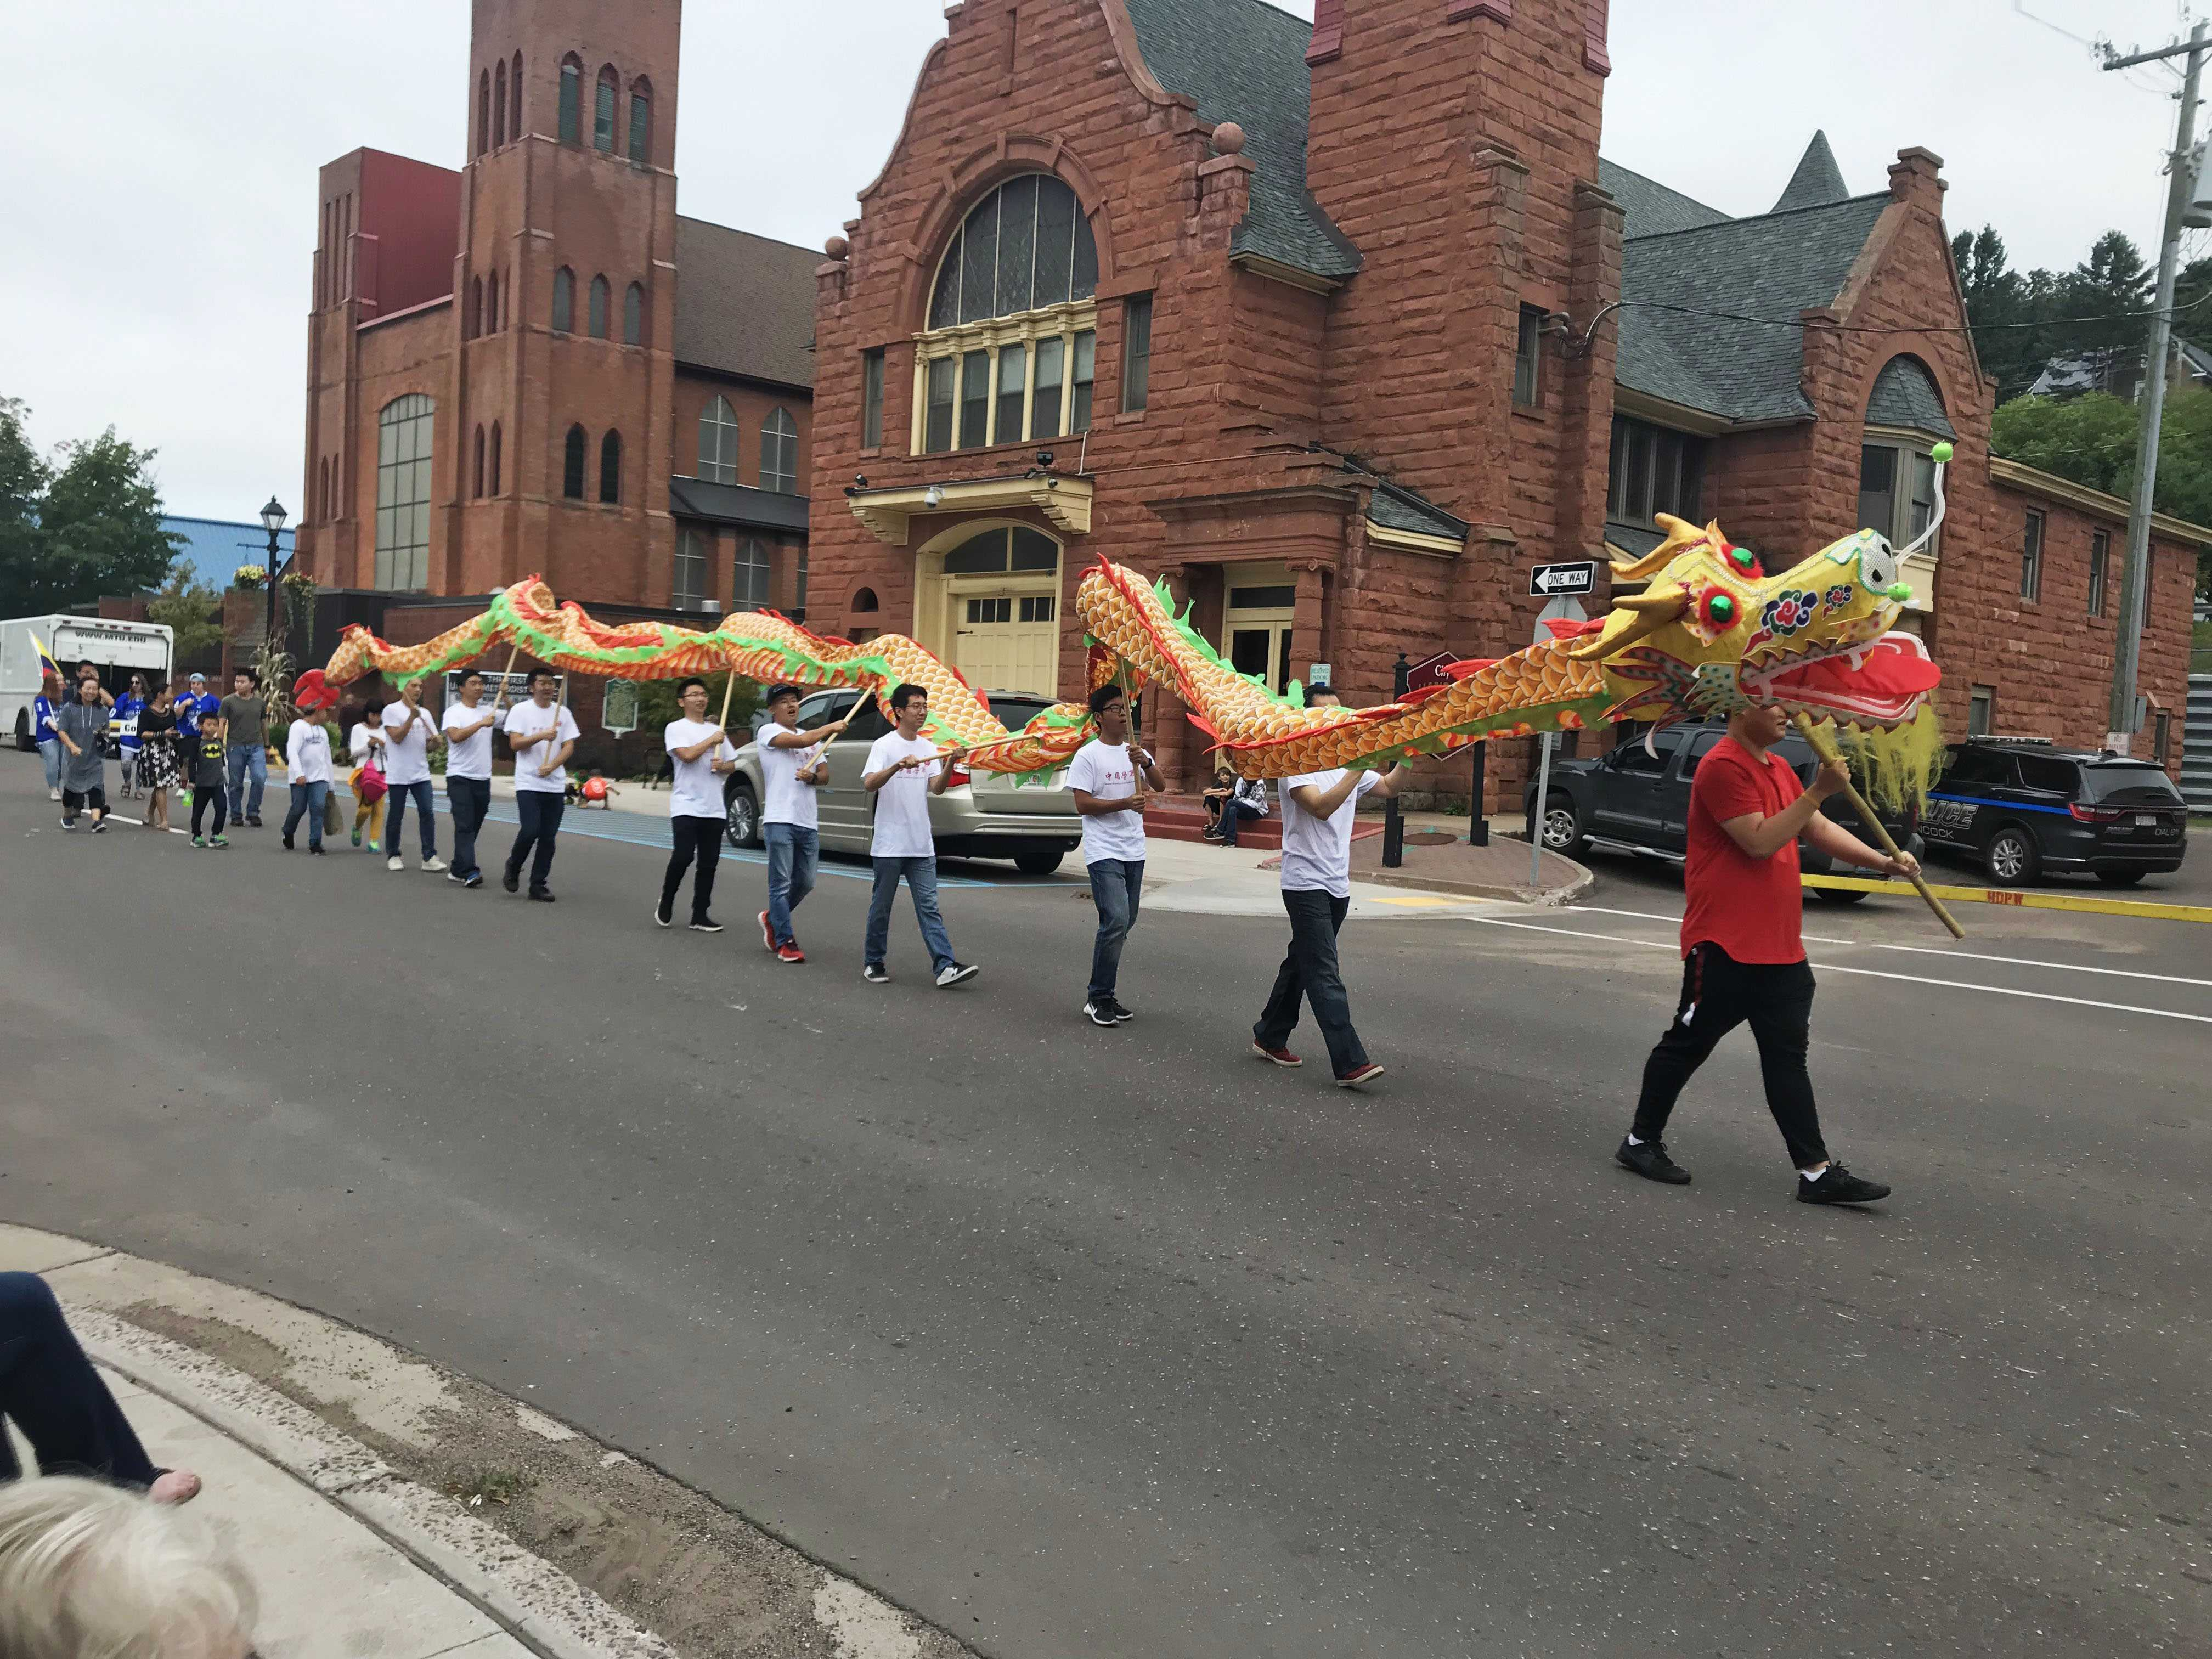 The Chinese community here in Houghton had not only a float but followed up with a gorgeous, swaying Chinese dragon.